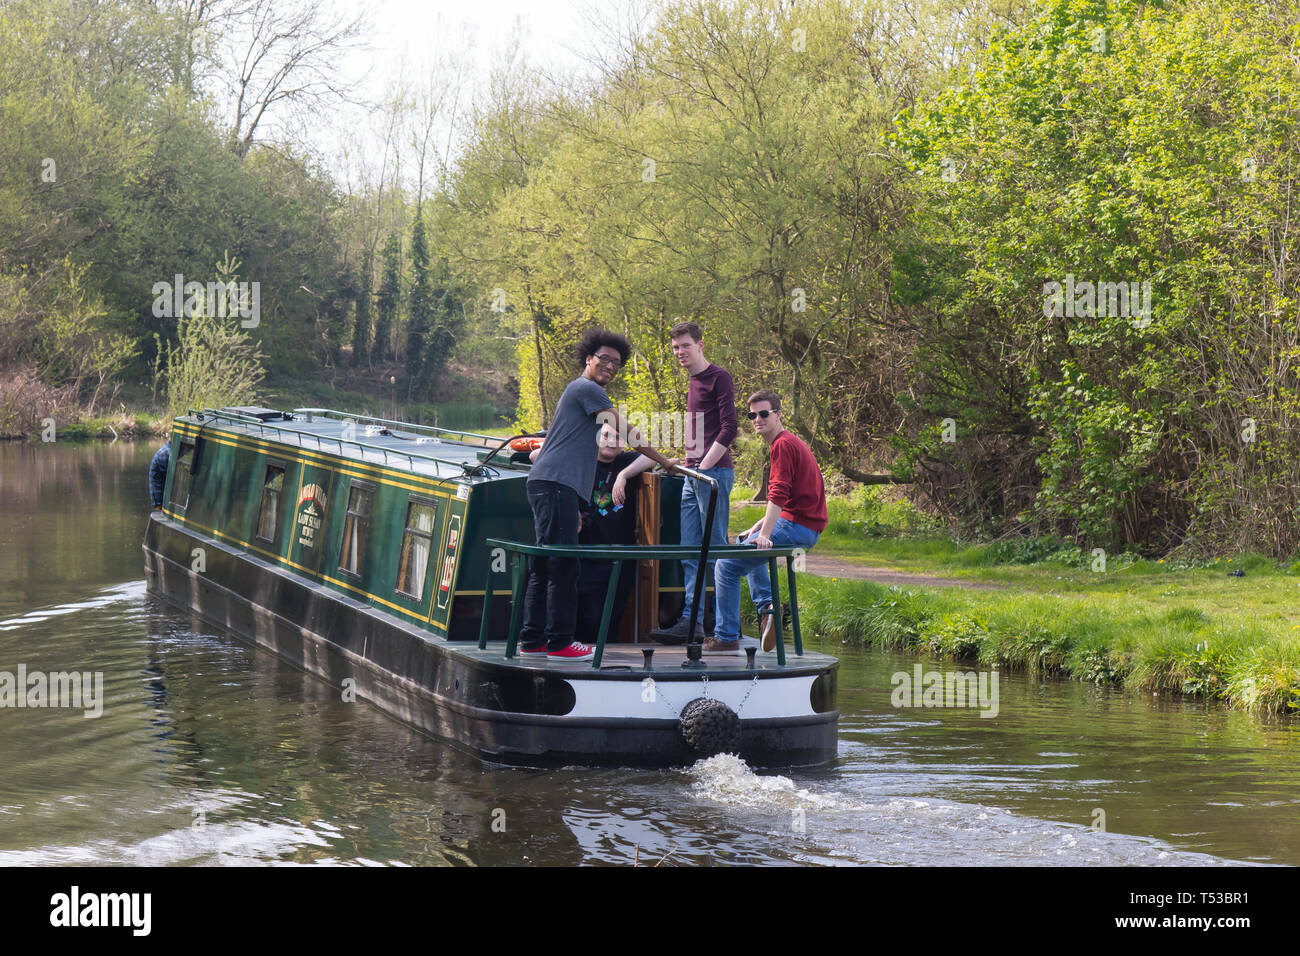 Group of British lads out together in a narrowboat travelling along a UK canal. Boating holiday in the spring sunshine. Having fun in the sun. - Stock Image